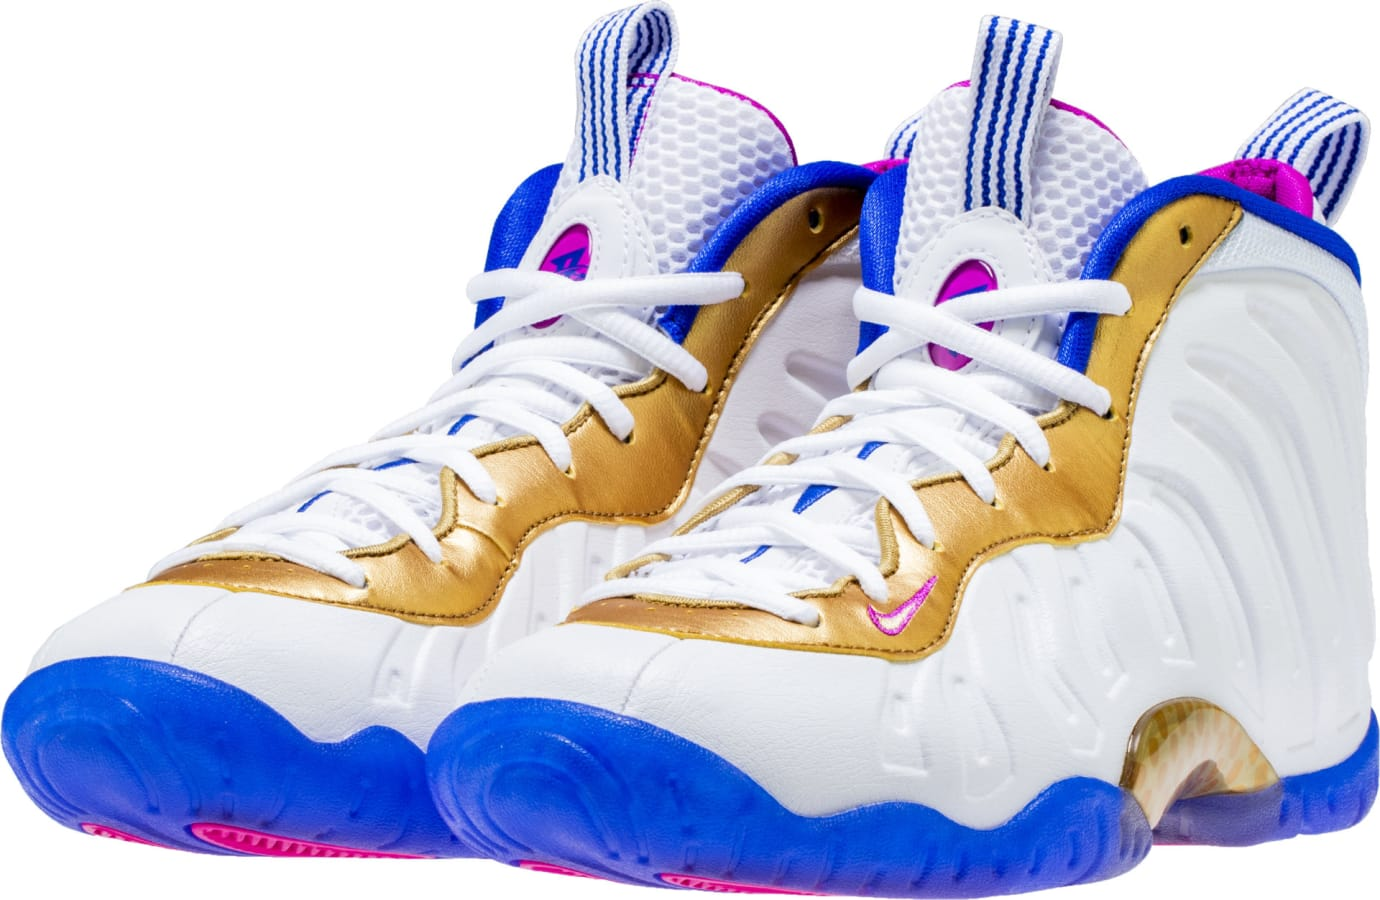 Nike Little Posite One White Fuchsia Blast Racer Blue Metallic Gold Release Date 644791-103 Front